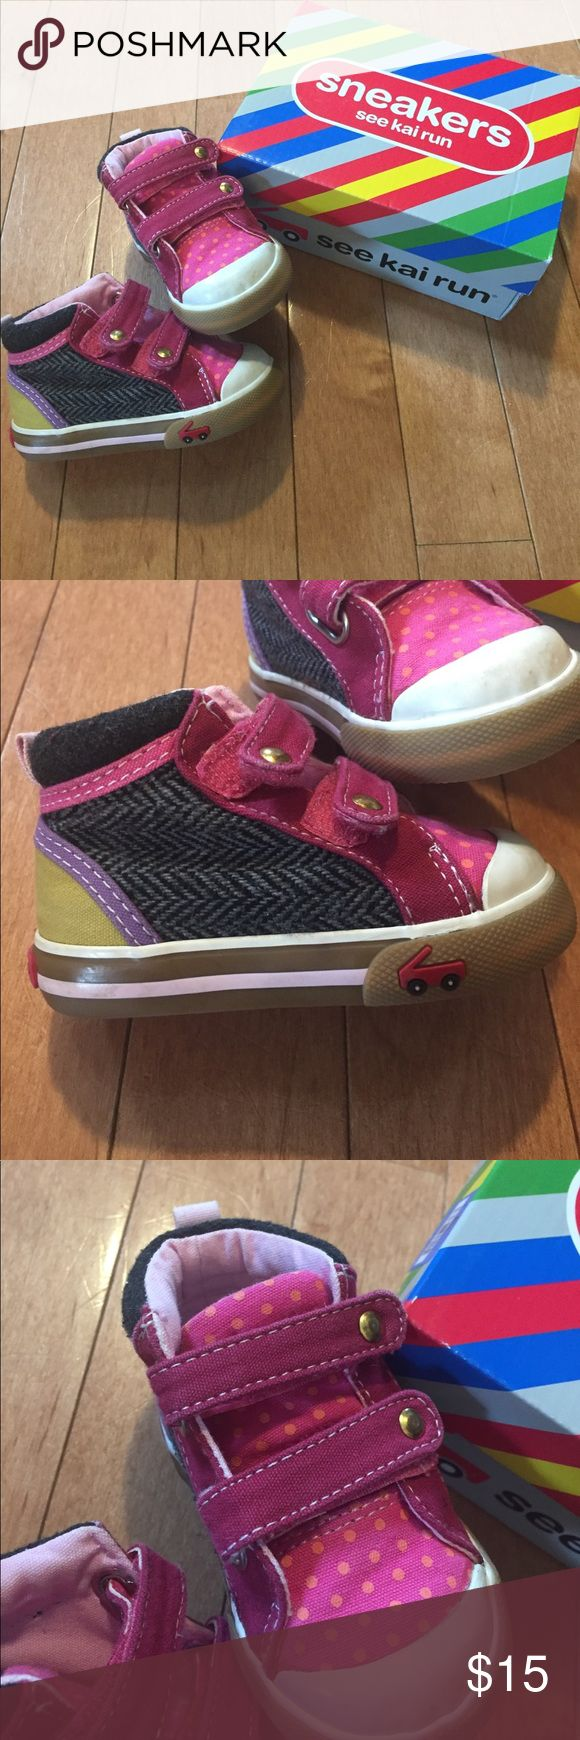 See Kai Run Size 3 Baby Girl Shoes Excellent Condition! Size 3 - See Kai Run - Baby Shoes See Kai Run Shoes Baby & Walker